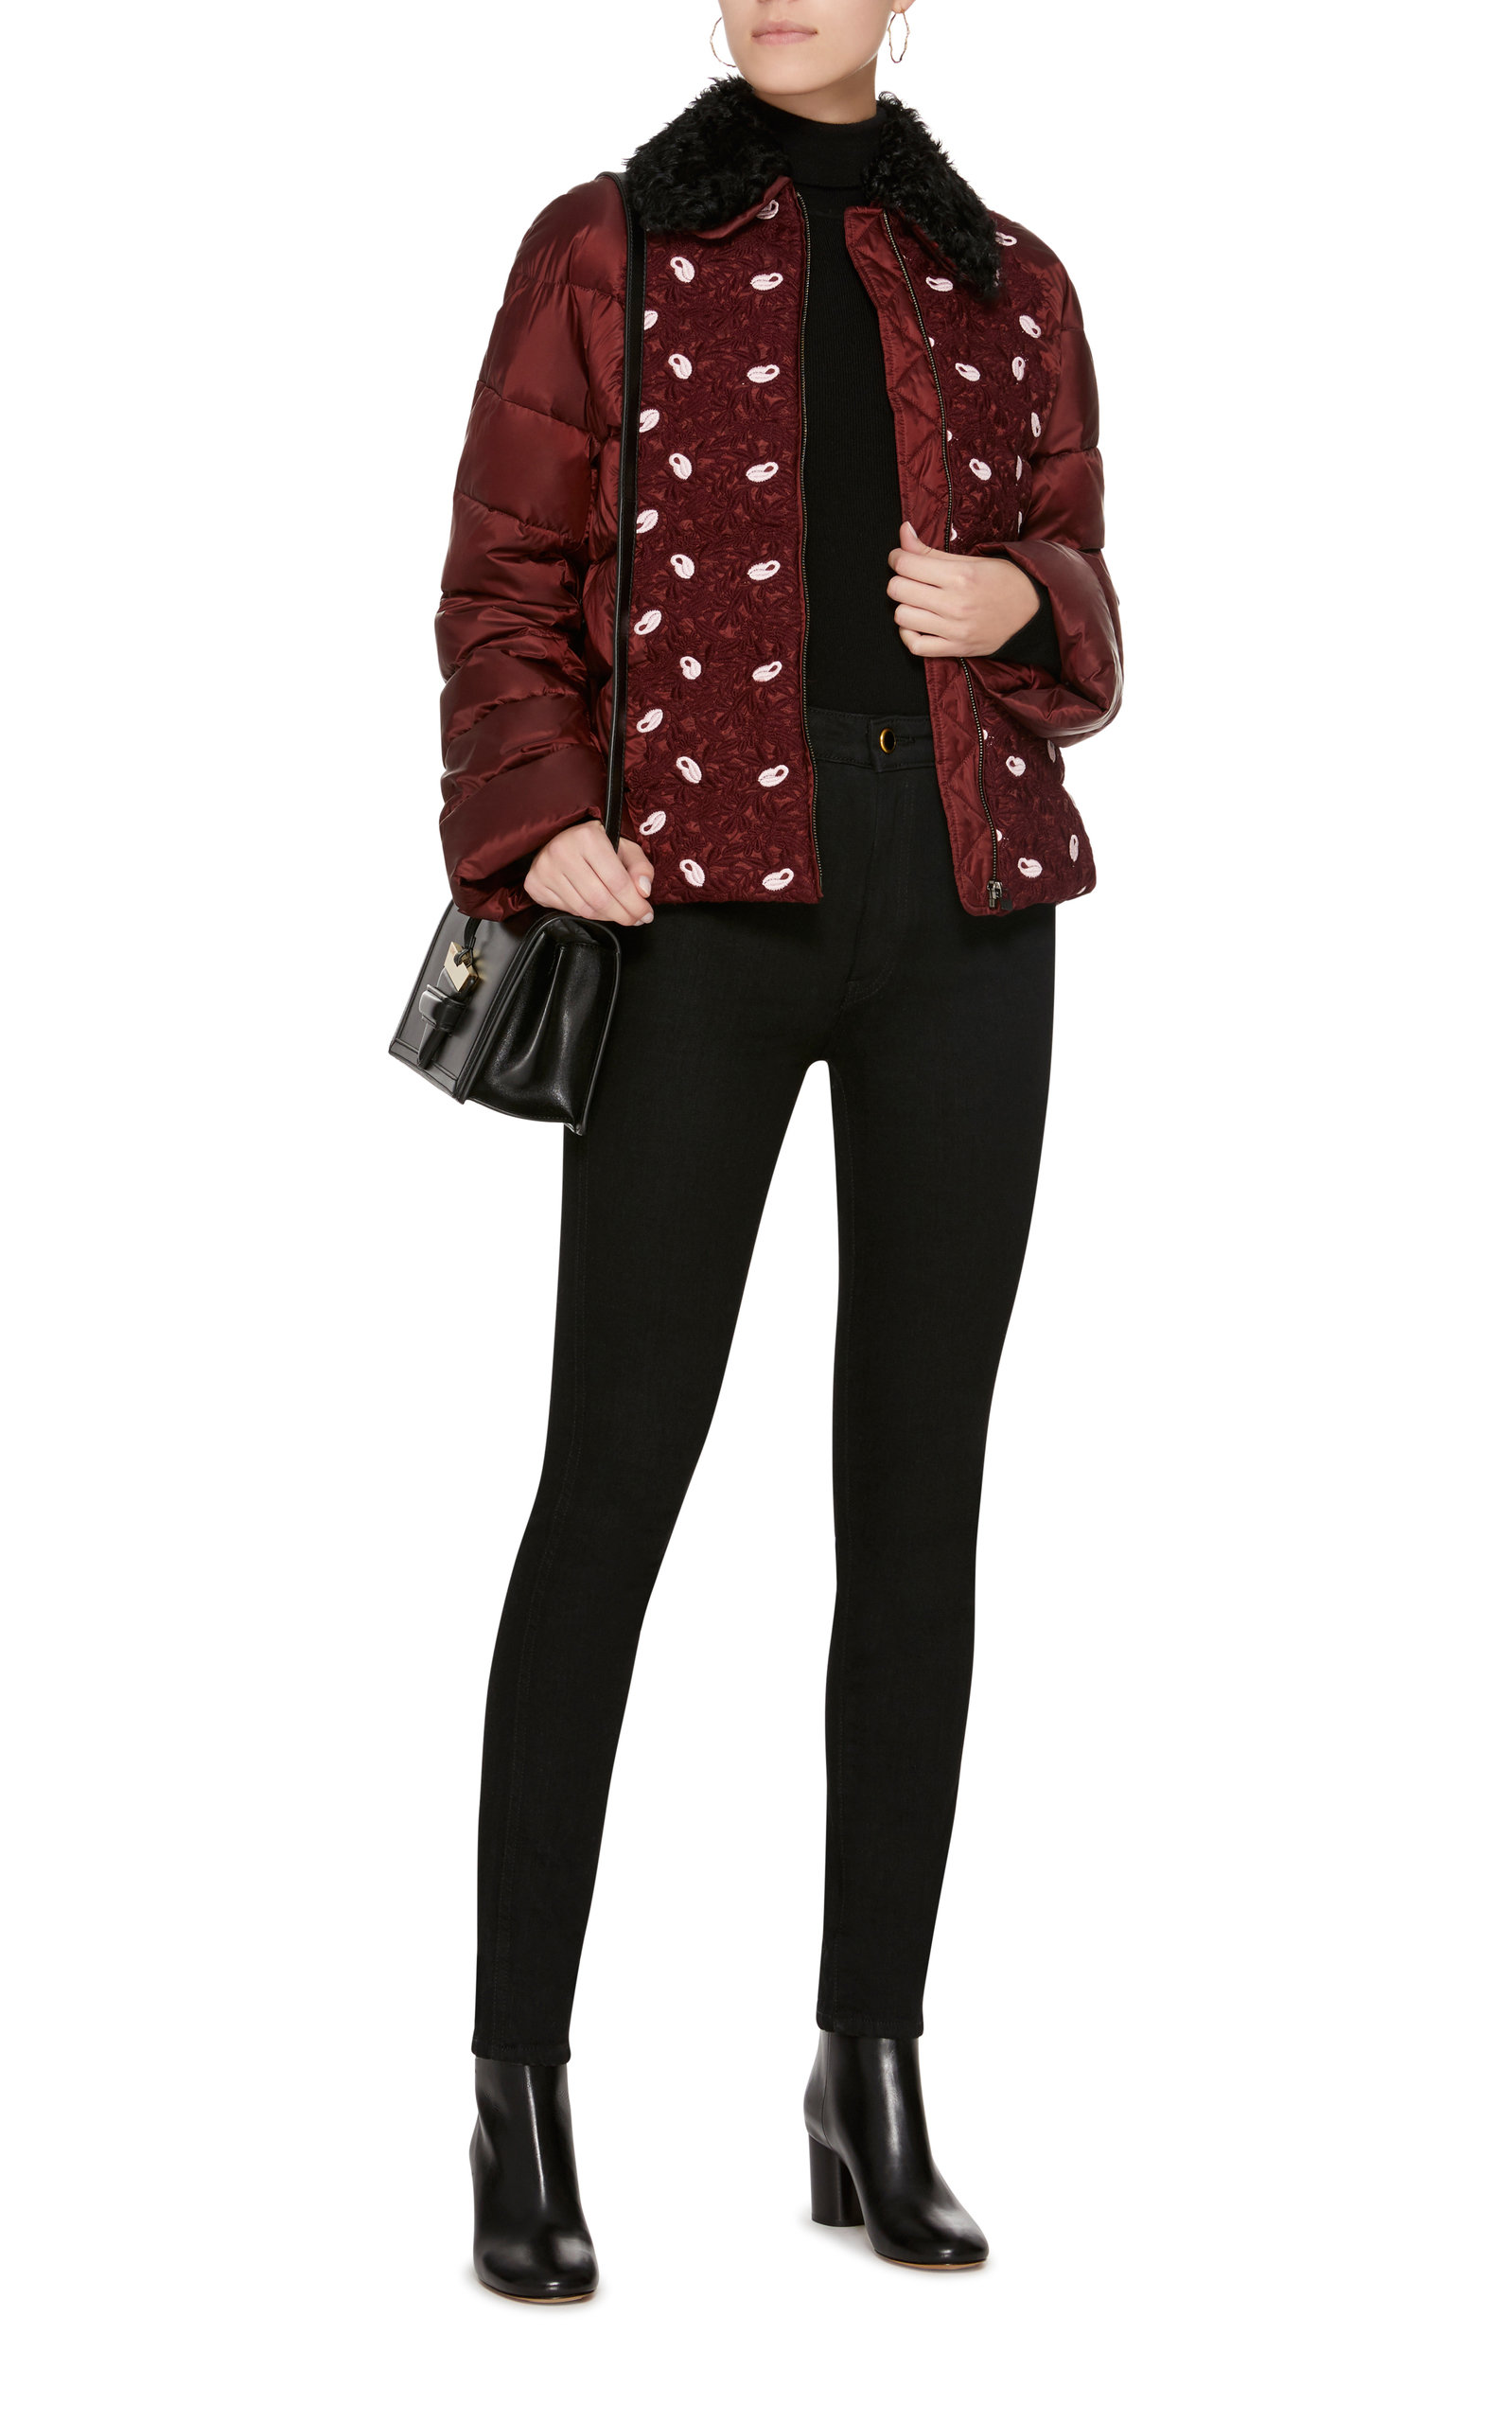 Jacket In Lace Valli Burgundy Puffer Giambattista AppliquÉ Floral nYxBS1wtwX